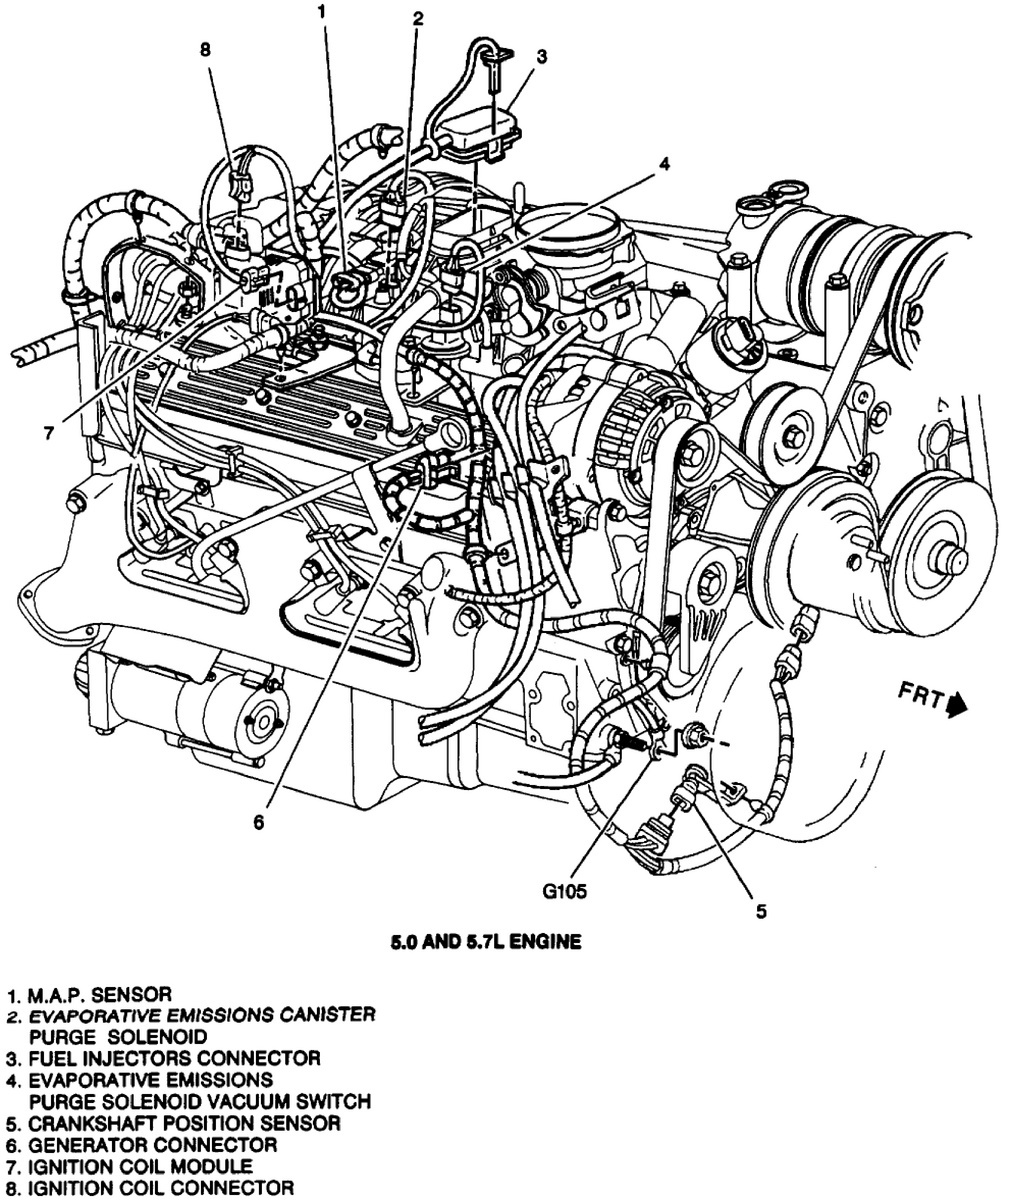 Chevy Tahoe Engine Diagram - Electrical Schematic Wiring Diagram